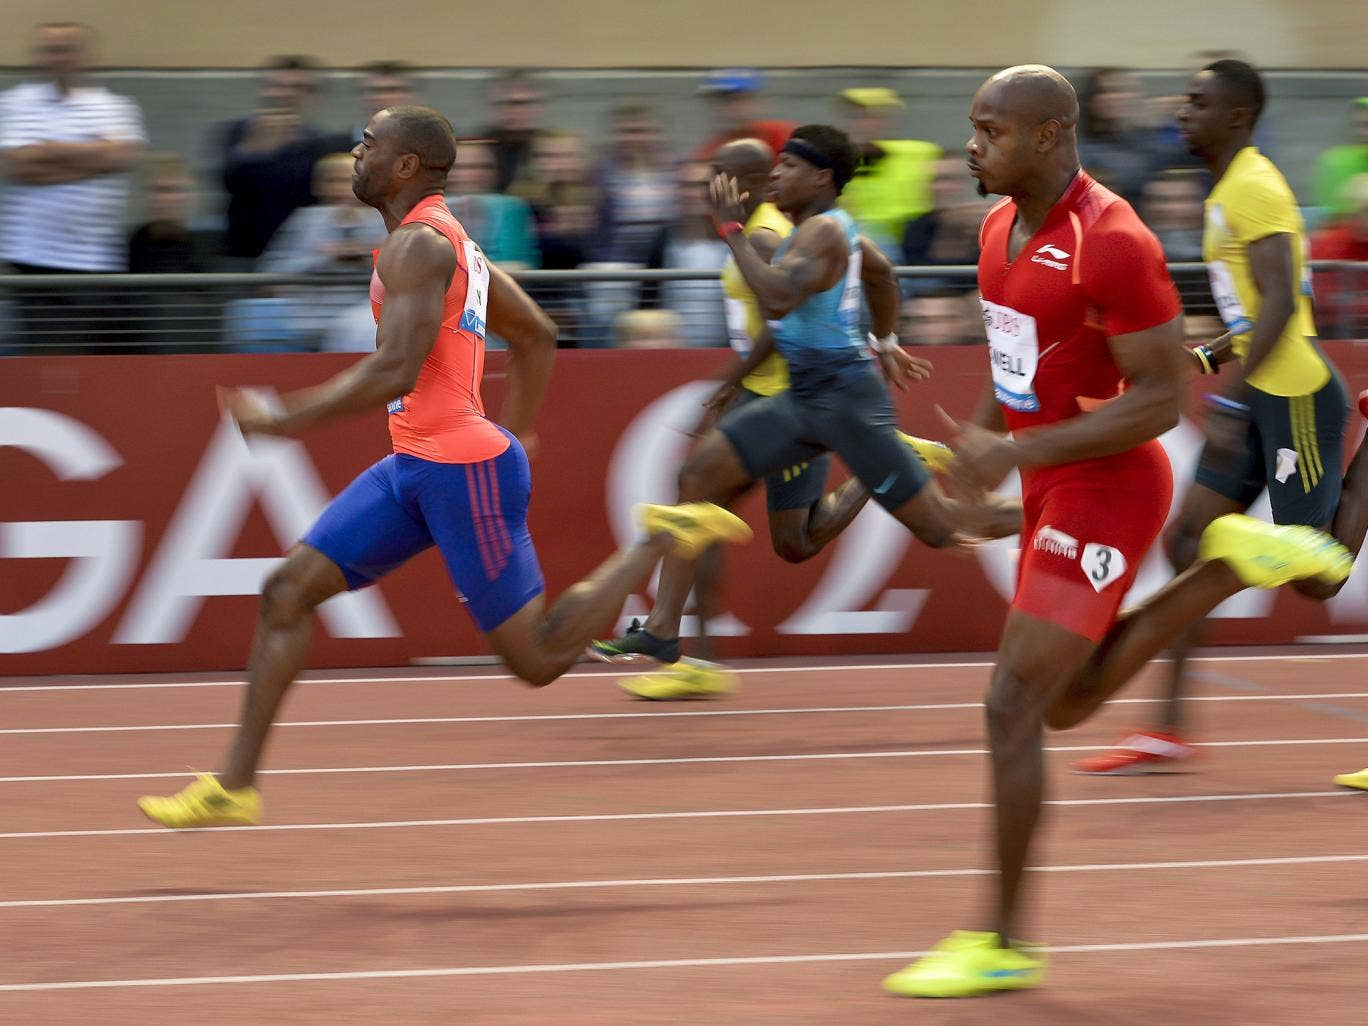 Tyson Gay (l) leads Asafa Powell (r) during the 100m event of the Diamond League Athletics meeting in Lausanne